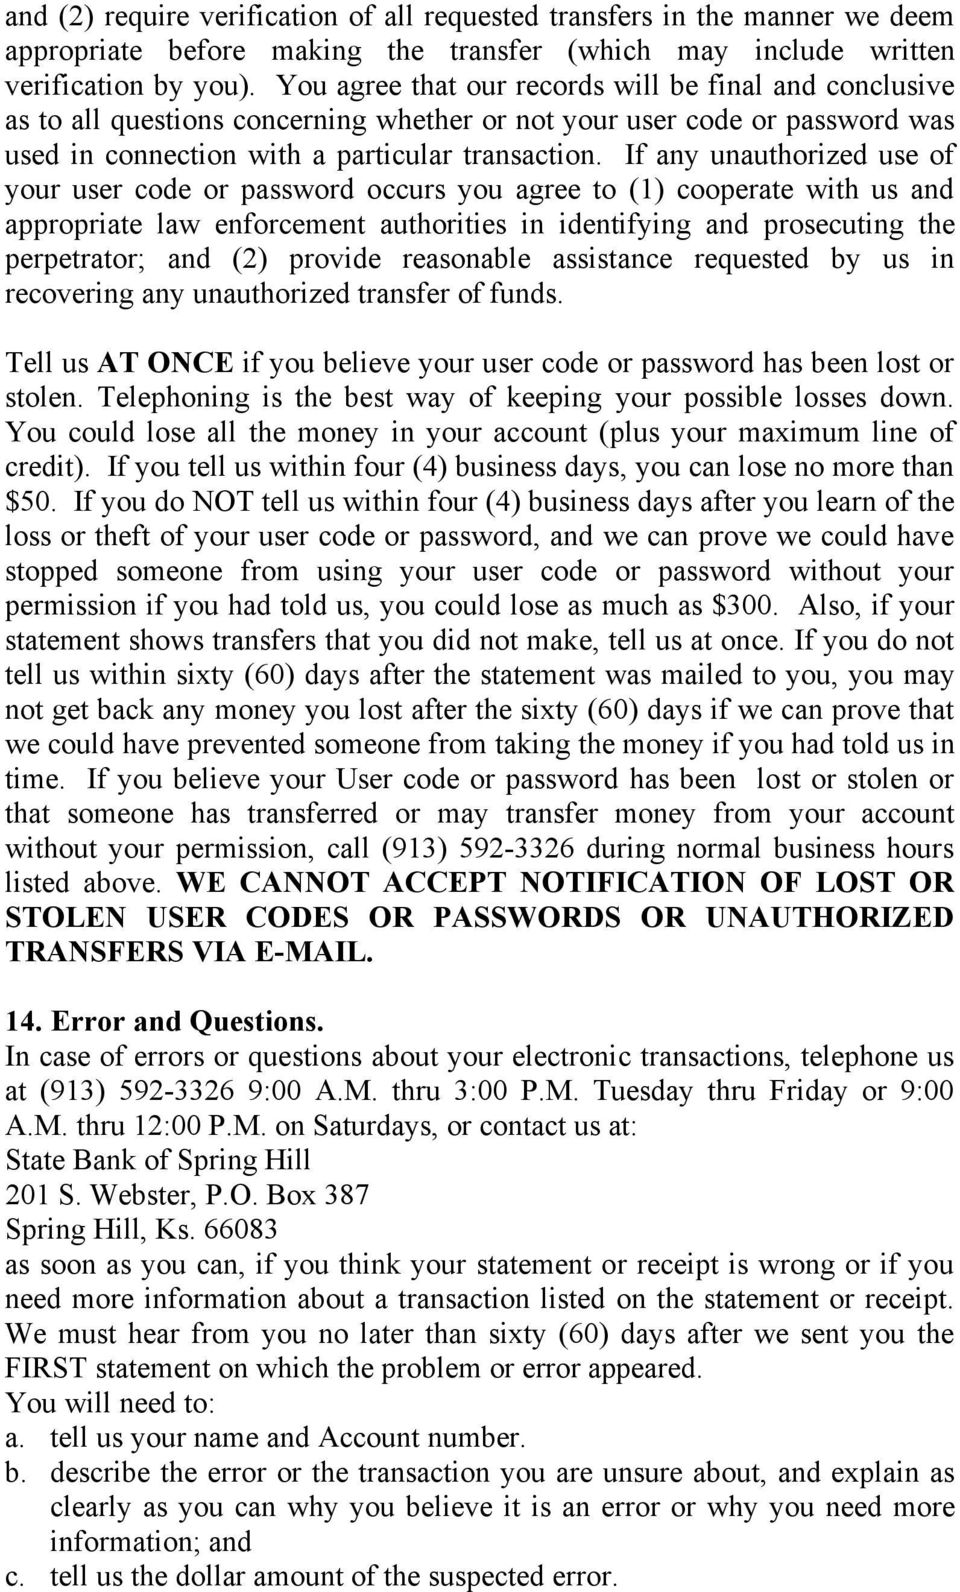 If any unauthorized use of your user code or password occurs you agree to (1) cooperate with us and appropriate law enforcement authorities in identifying and prosecuting the perpetrator; and (2)